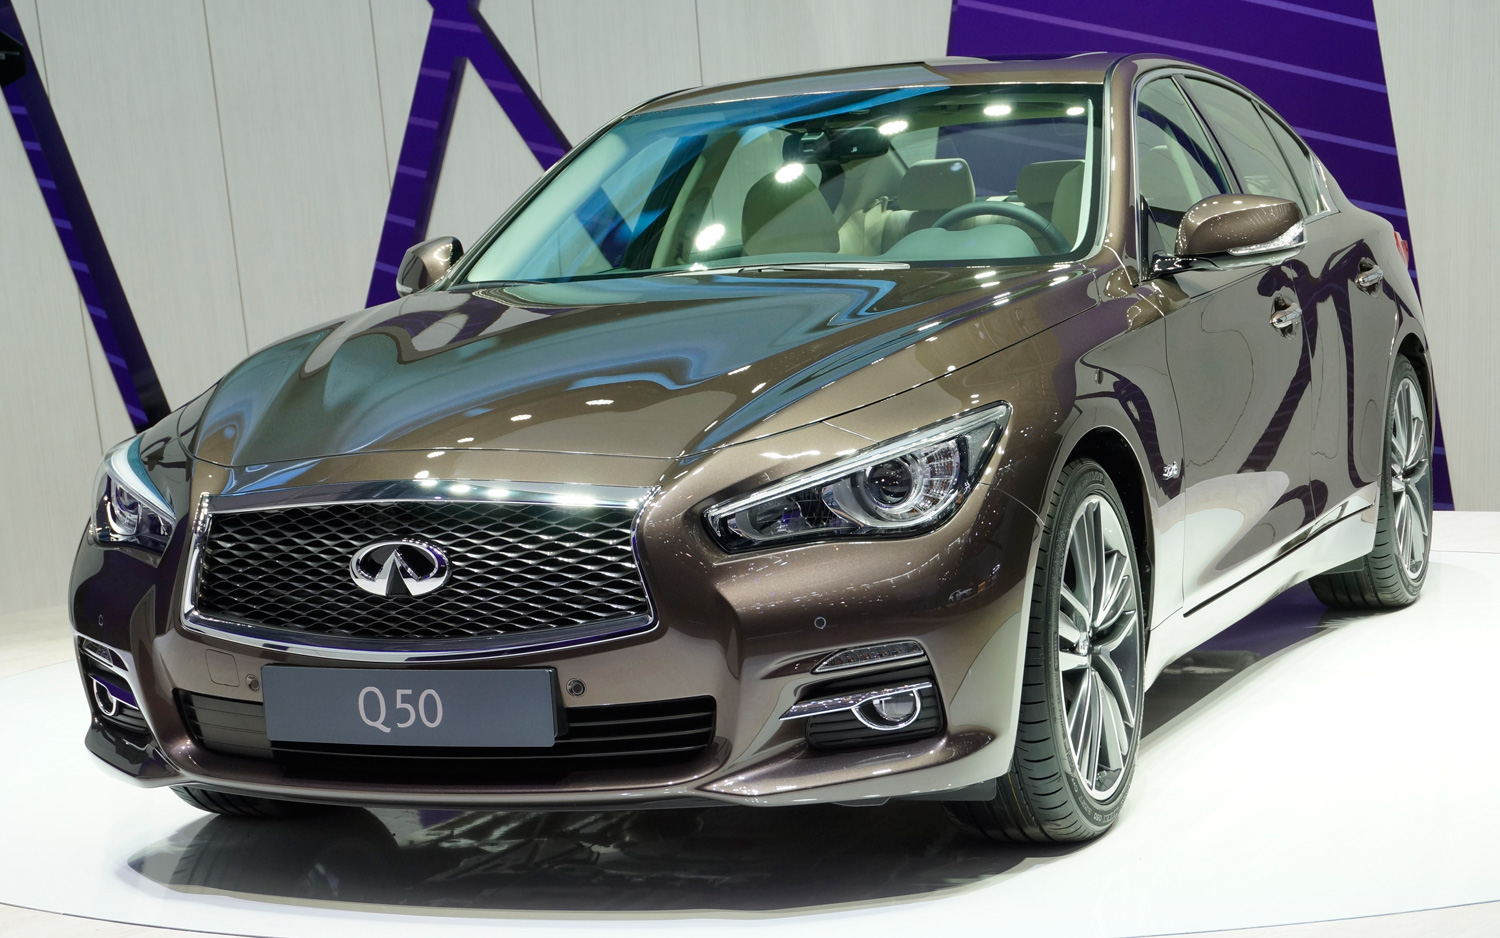 2014 infiniti q50 debuts in geneva with diesel manual transmission rh motortrend com 2014 Mercedes Manual Transmission Infiniti Q50 Coupe